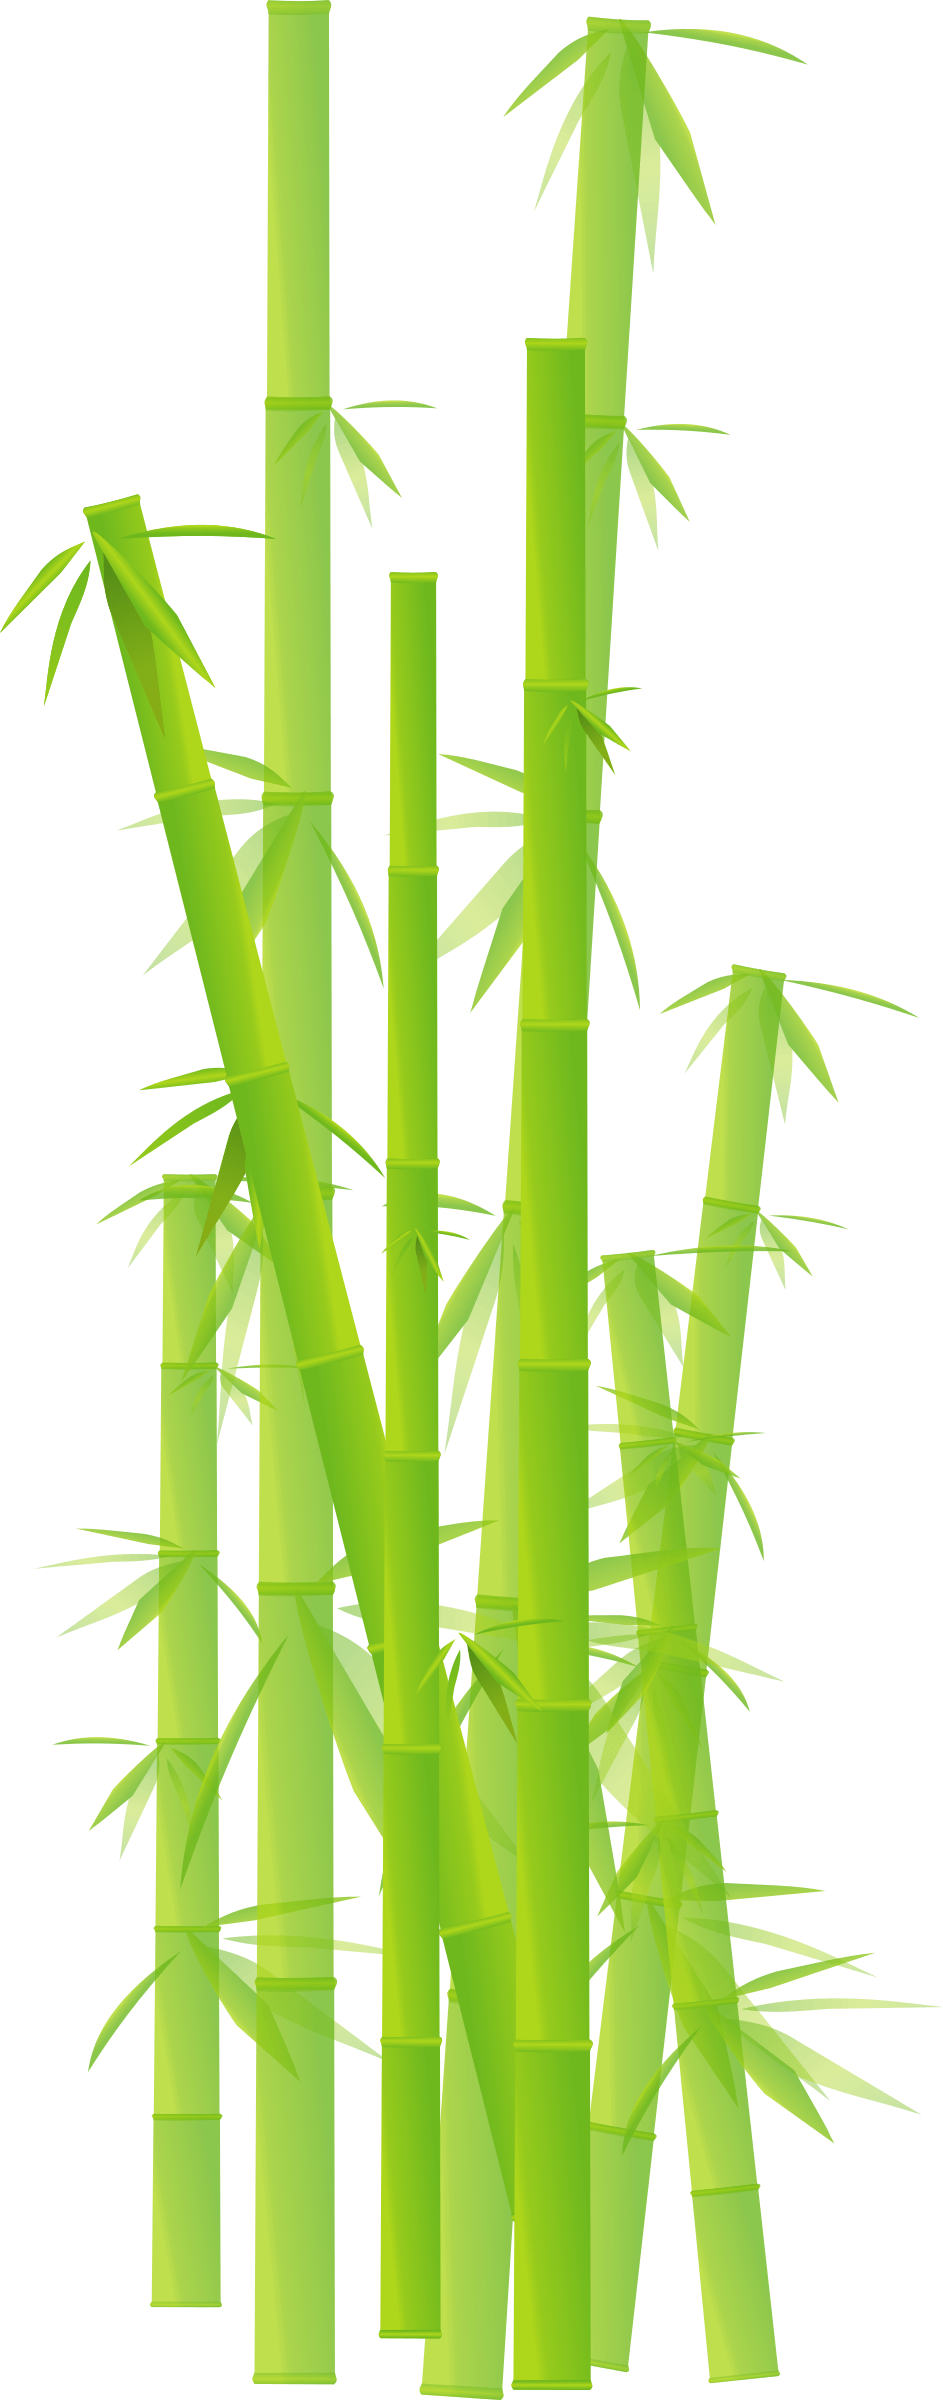 Bamboo clipart Bamboo Transparent FREE for download on